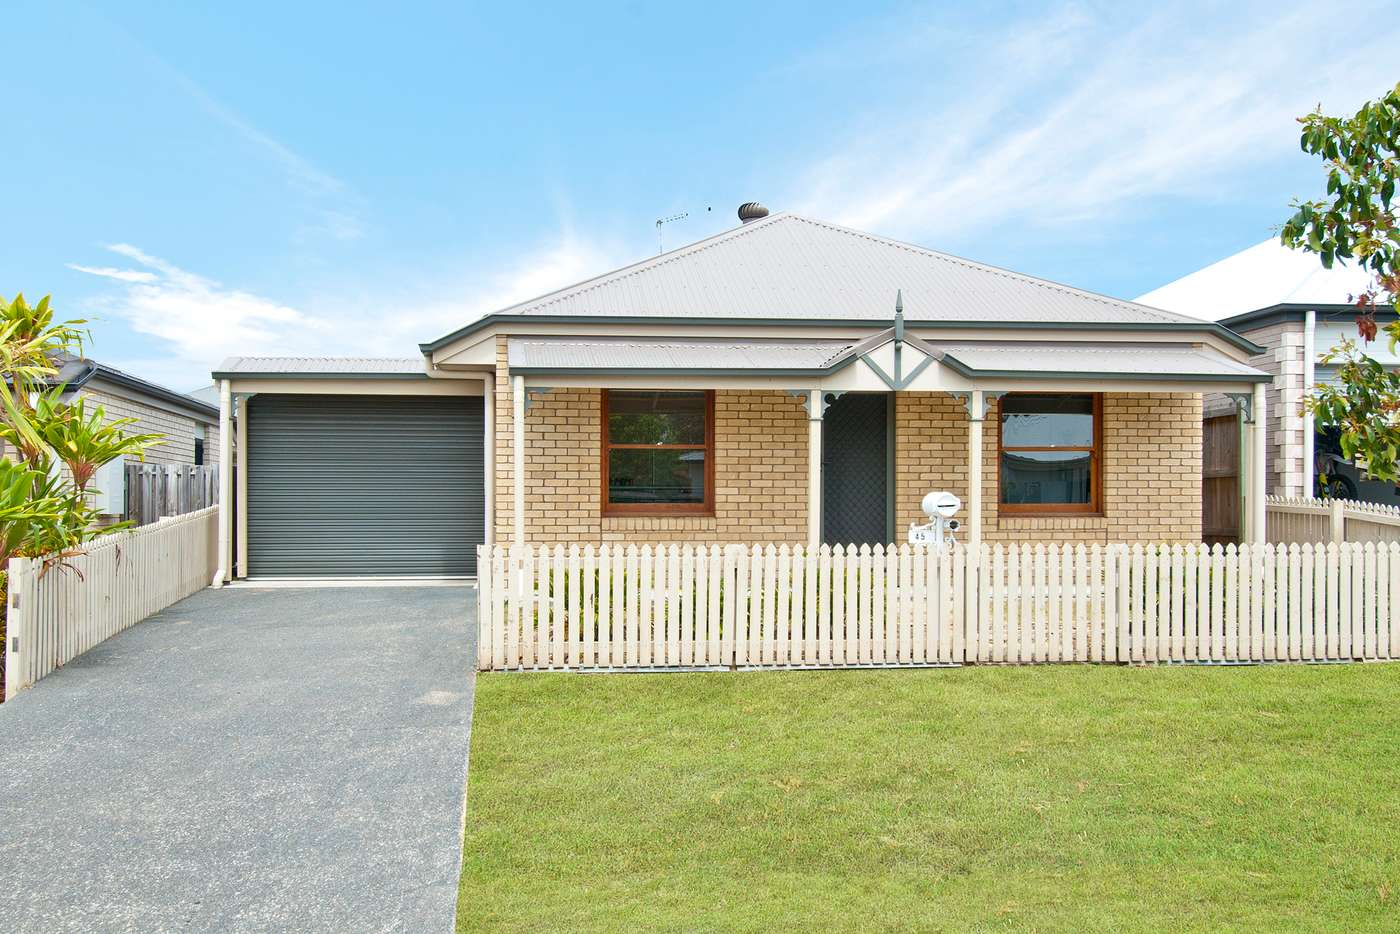 Main view of Homely house listing, 45 Carew Street, Yarrabilba QLD 4207